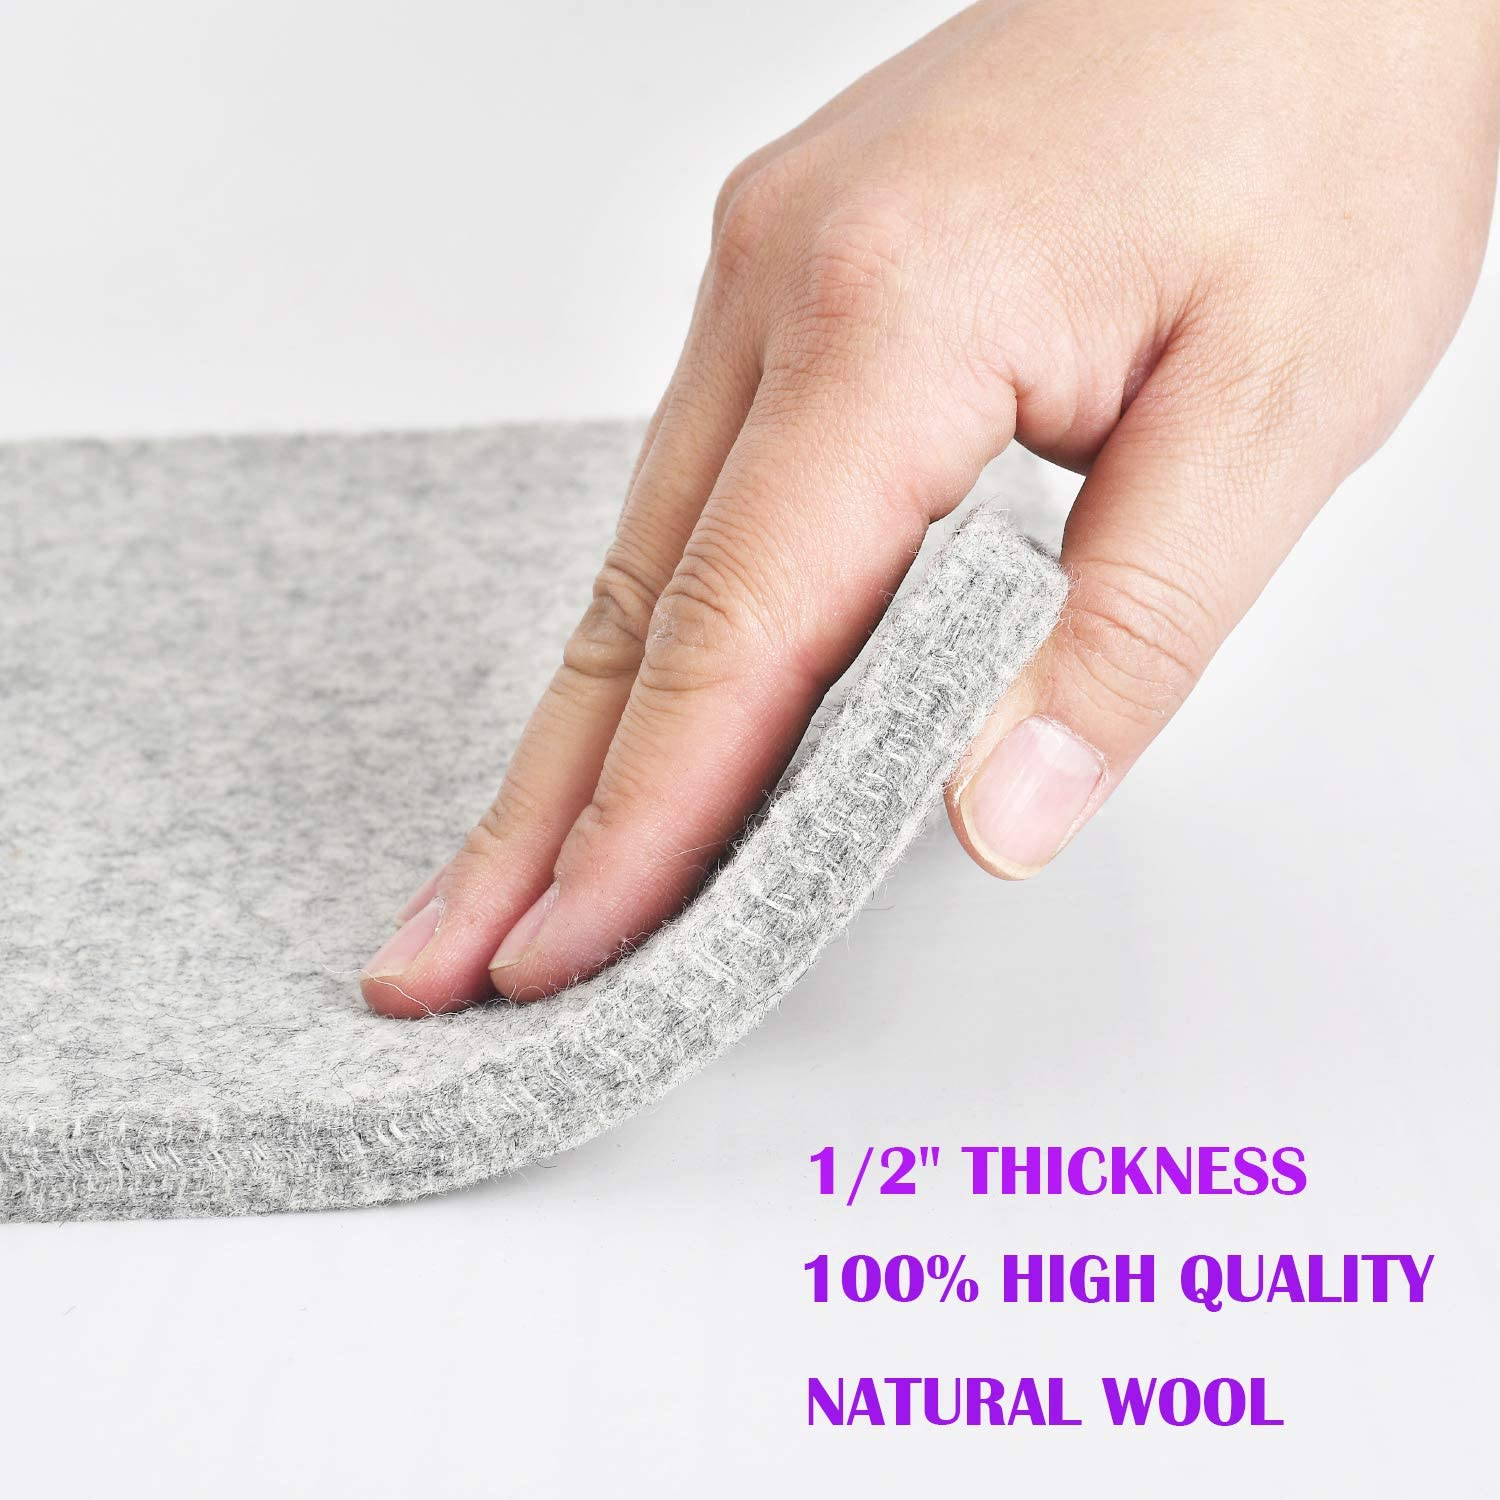 Rdutuok 17x13.5 Inches Wool Pressing Mat for Quilting Ironing Pad Easy Press Wooly Felted Iron Board for Quilters Retains Heat Great for Quilting /& Sewing Projects